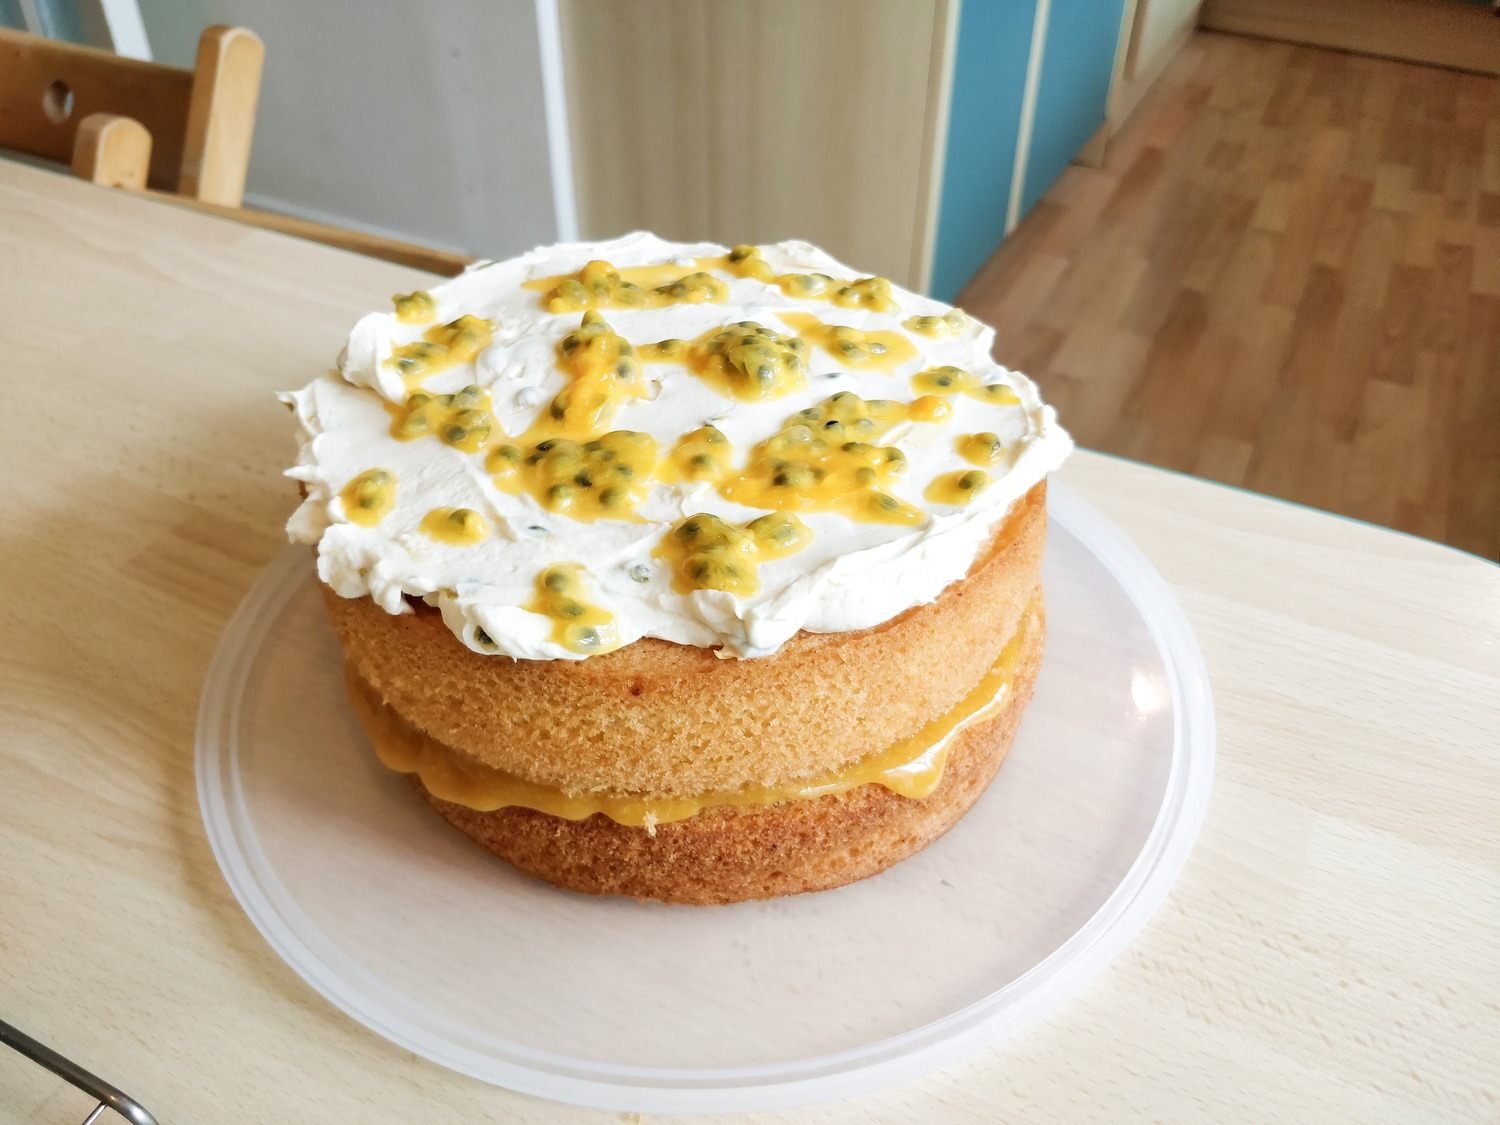 The passion fruit and orange cake